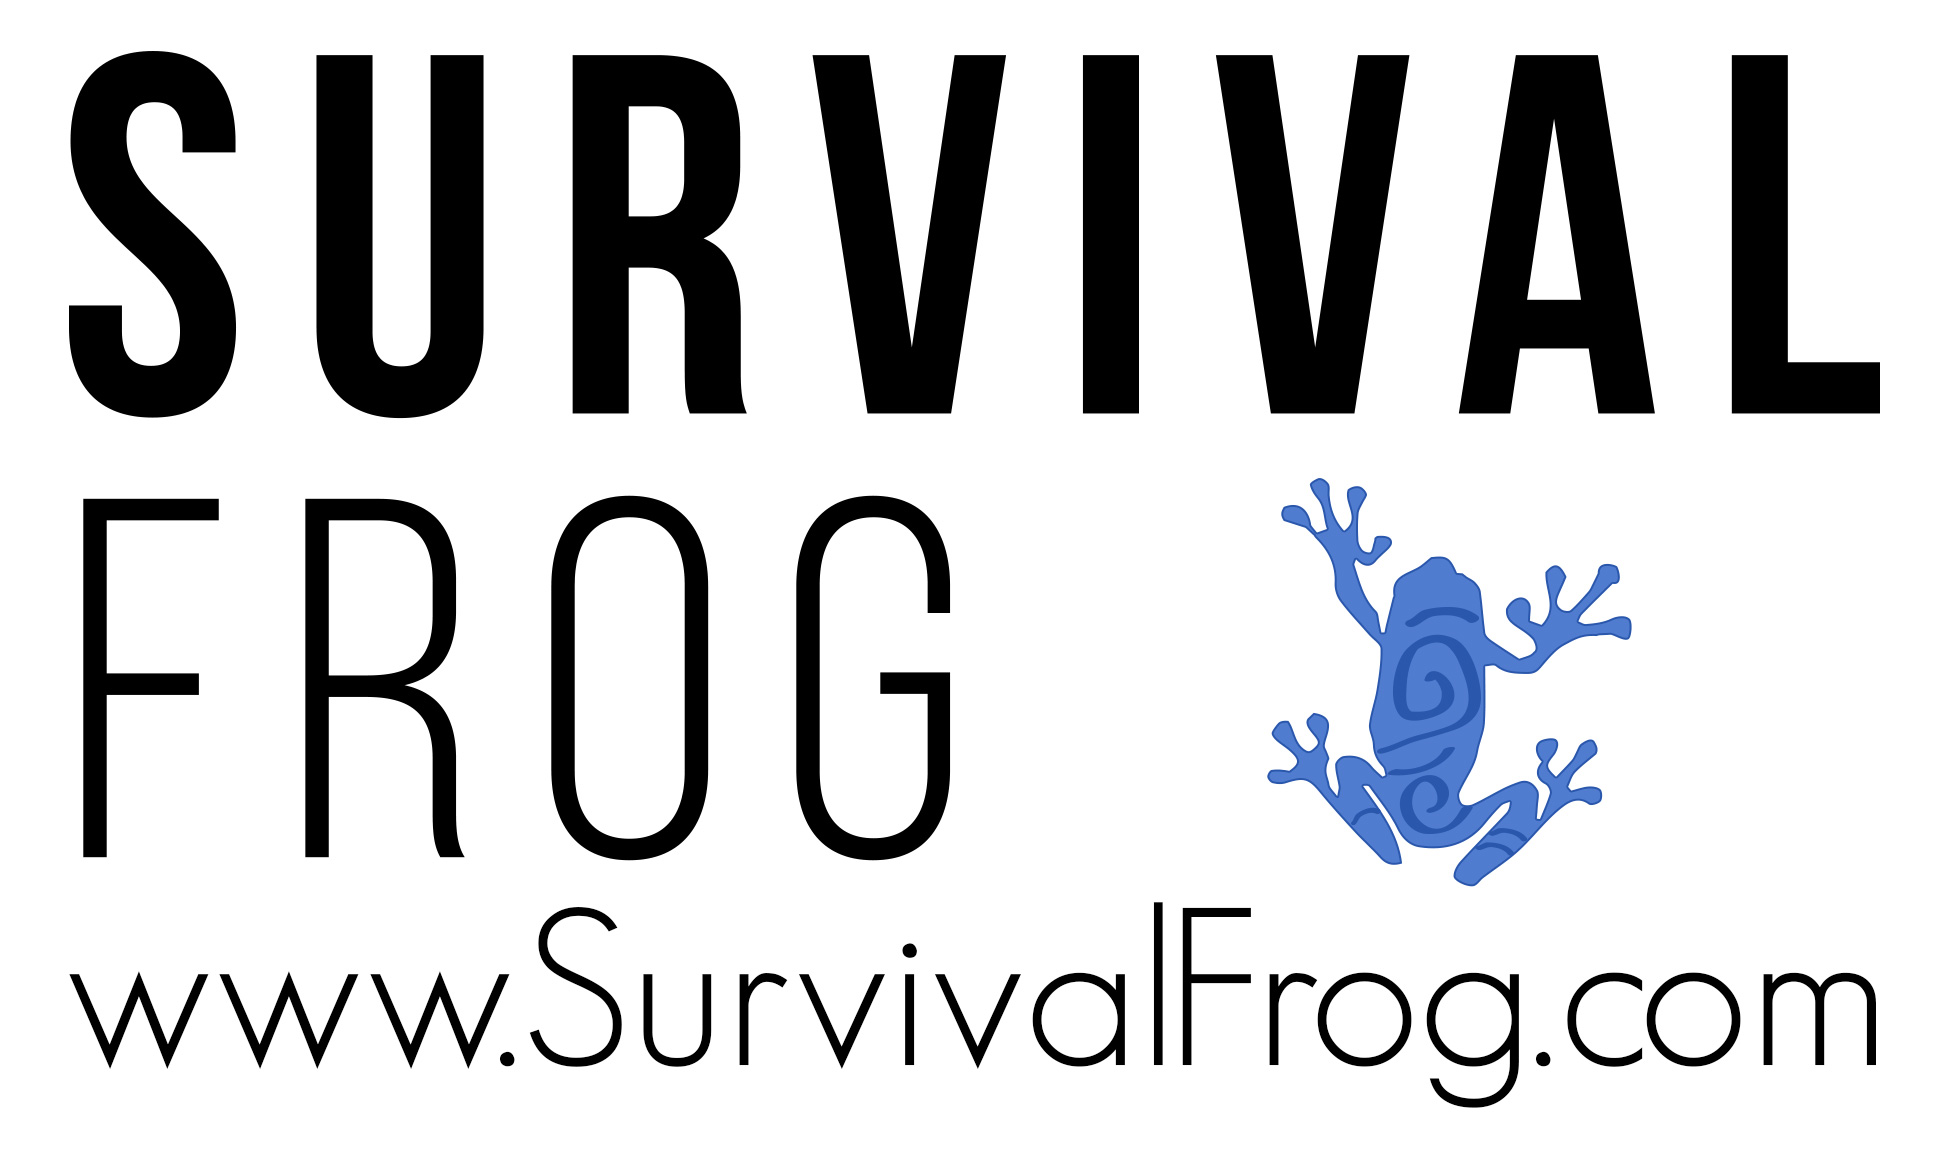 Survival Frog  @ Shop4Stuff.Biz - Survival gear with the best customer satisfaction rating in the industry